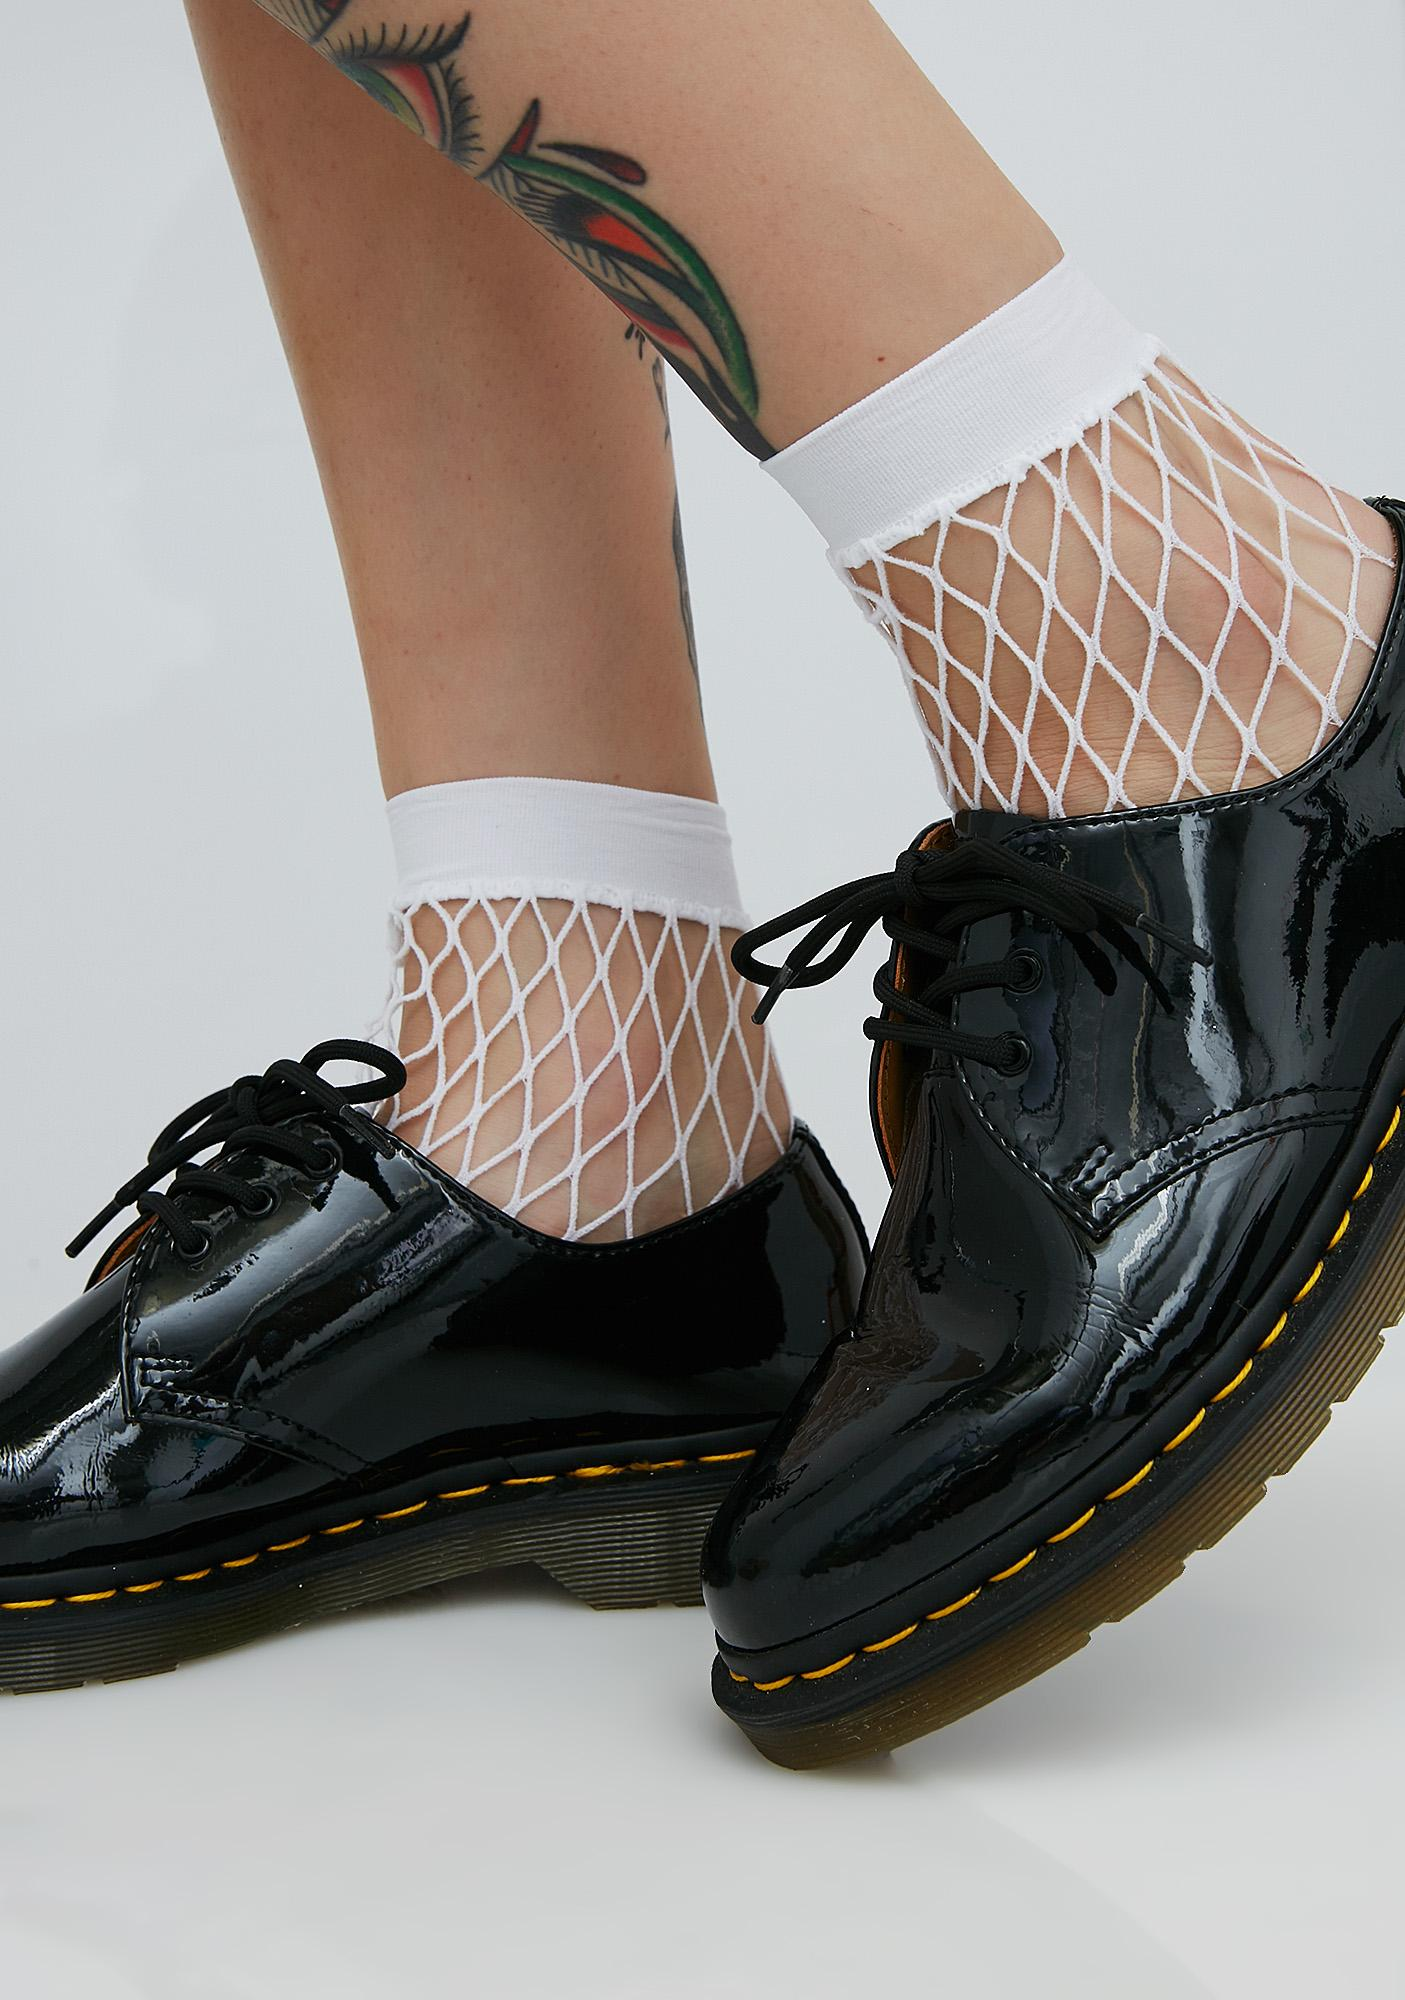 Too Hooked Fishnet Socks